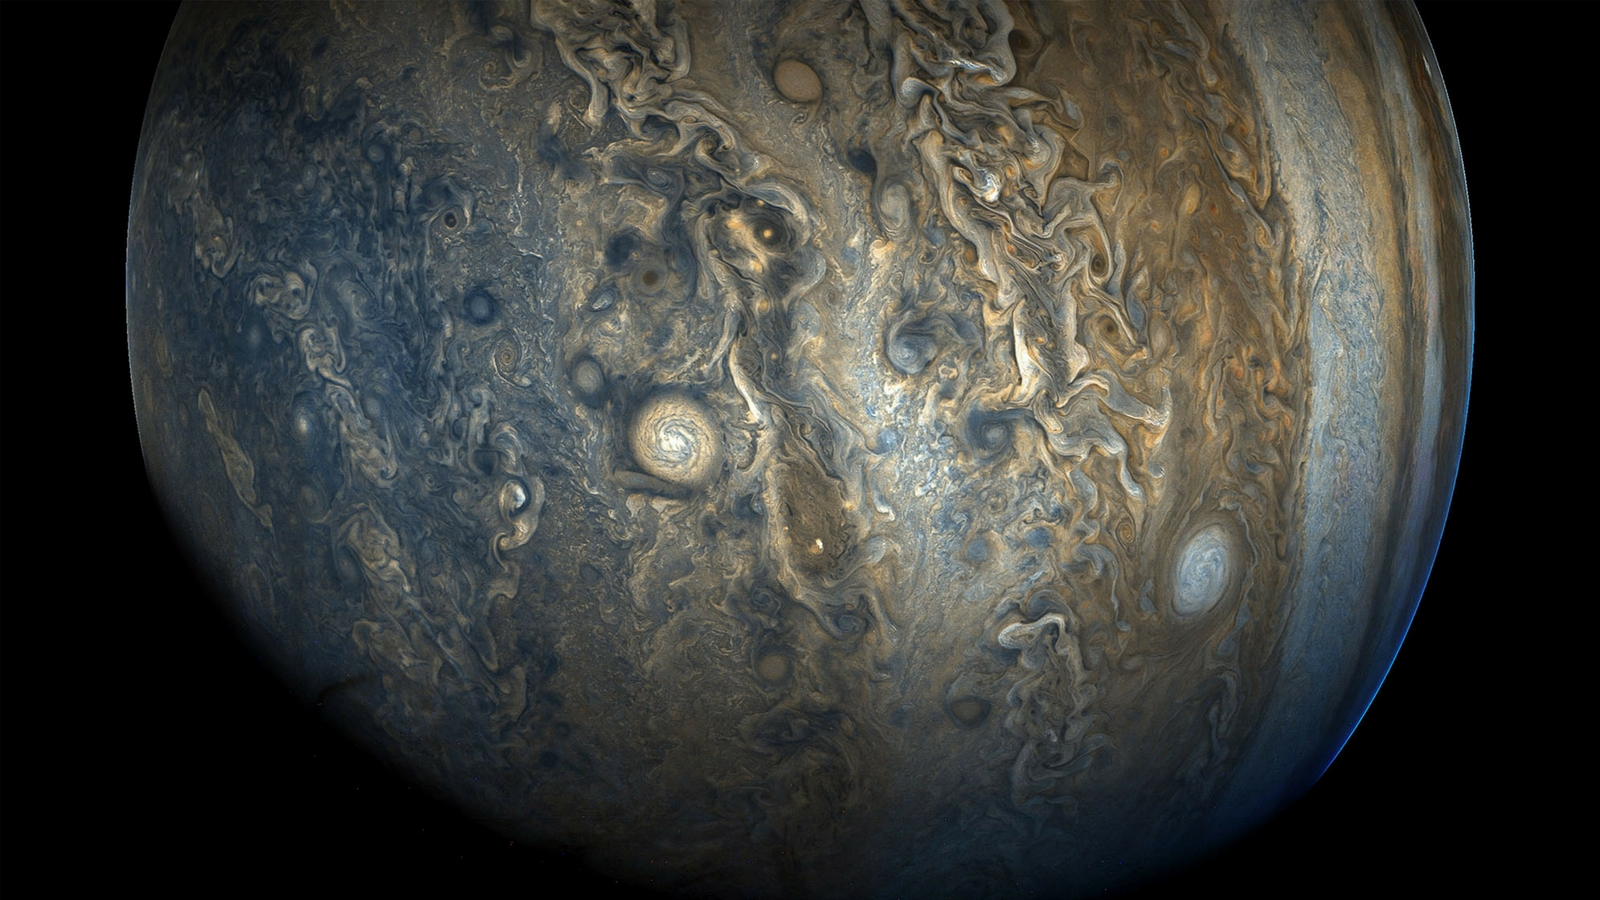 Jupiter's cloud belts are greater than previously thought. Credit NASA  JPL-Caltech  SwRI  MSSS  Kevin M. Gill